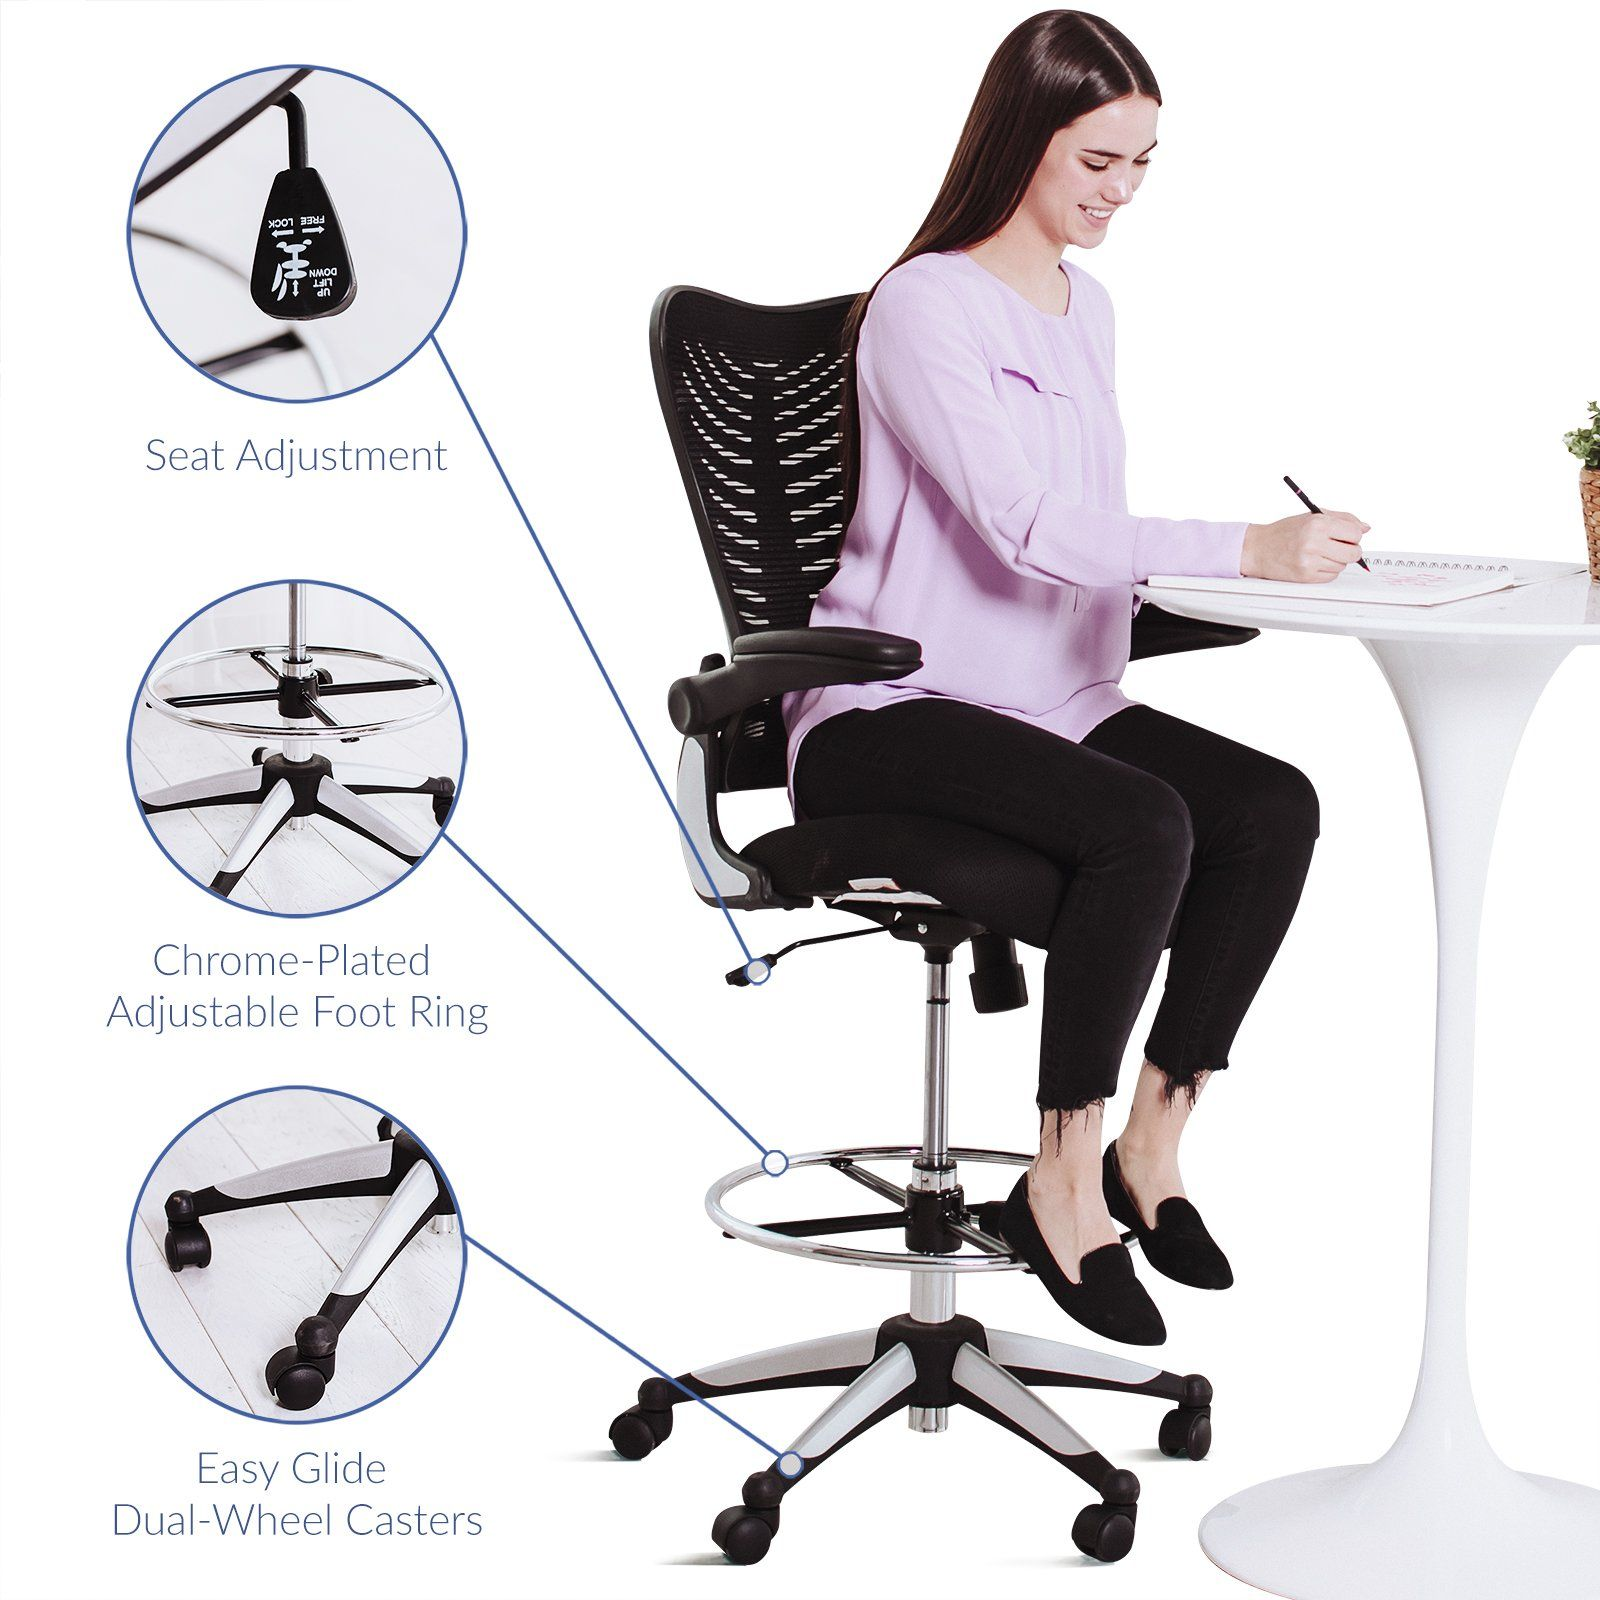 Modway Charge Drafting Chair In Black Reception Desk Chair Tall Office Chair For Adjustable Standing Desks D Reception Desk Chairs Drafting Chair Desk Chair Tall office chairs with arms